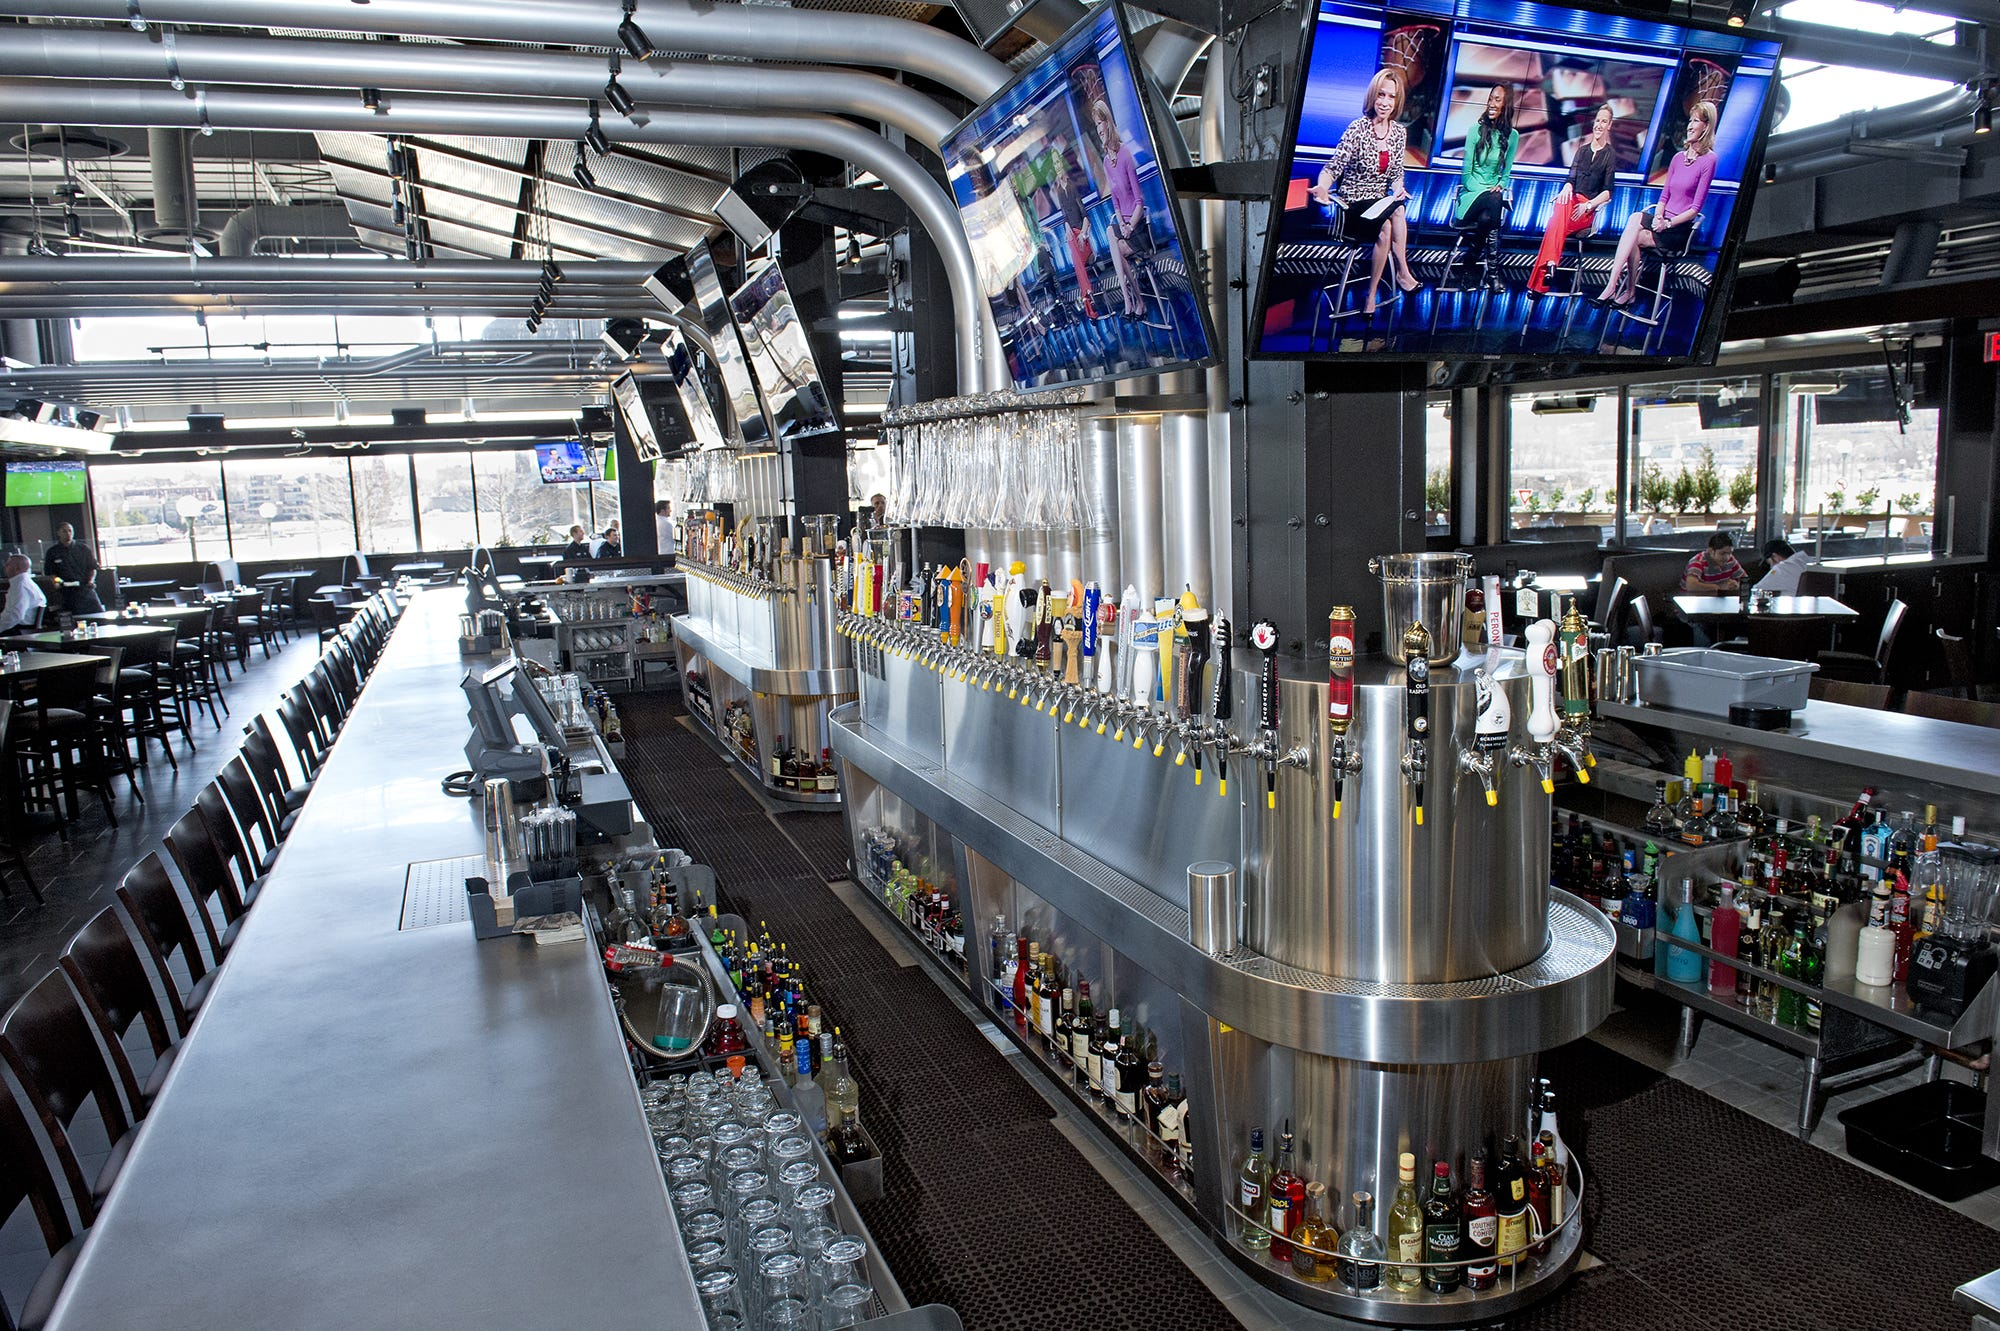 Yard House Bars Feature The Island Bar, Which Offers